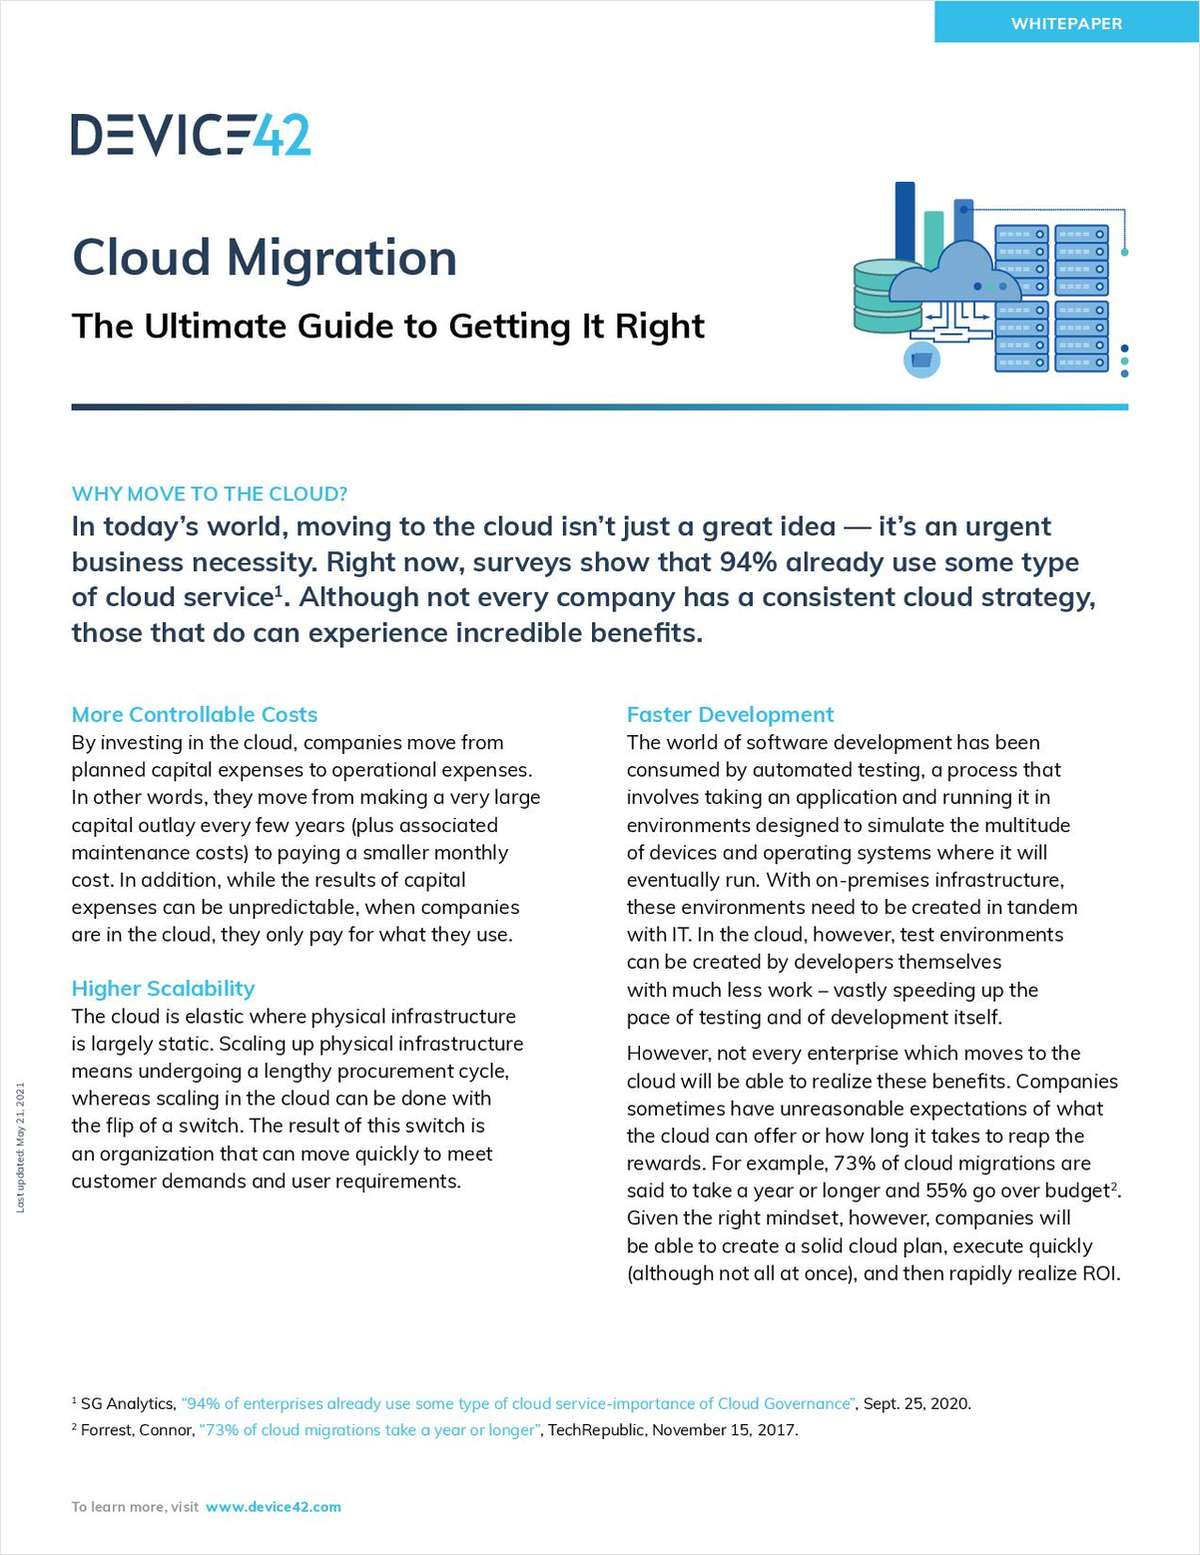 Cloud Migration: The Ultimate Guide to Getting it Right